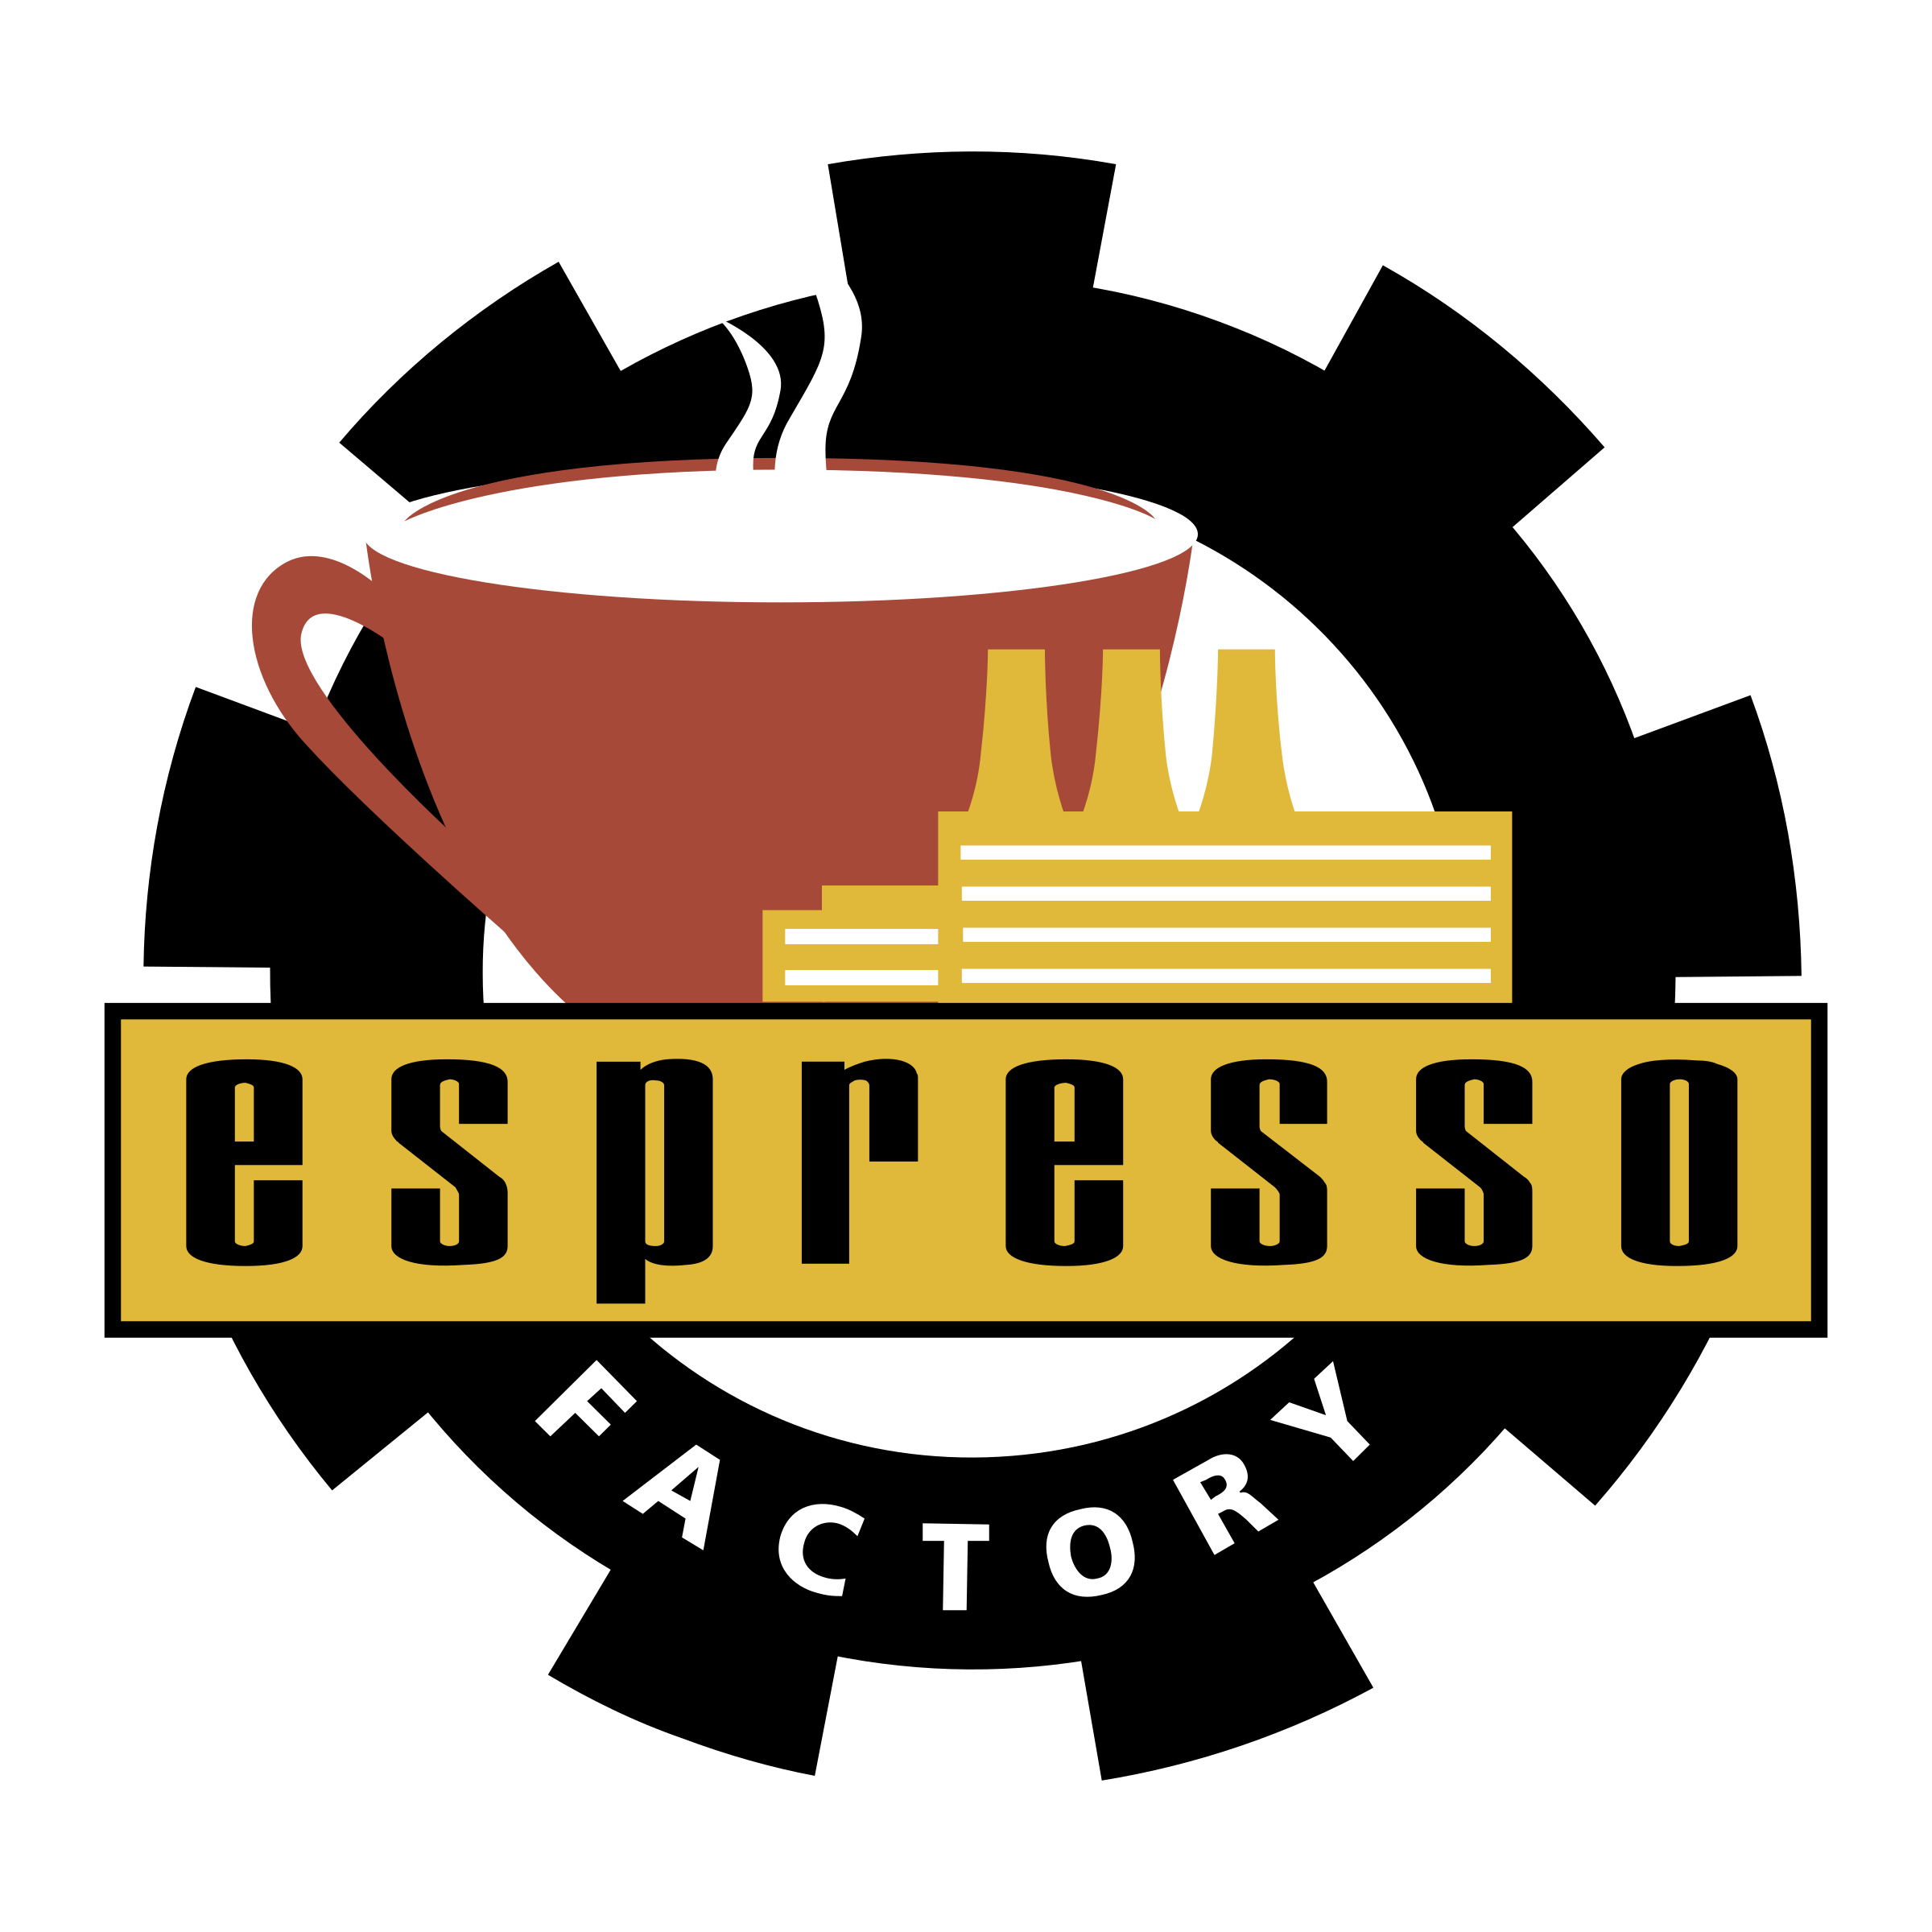 Vector factory coffee. Espresso logo png transparent